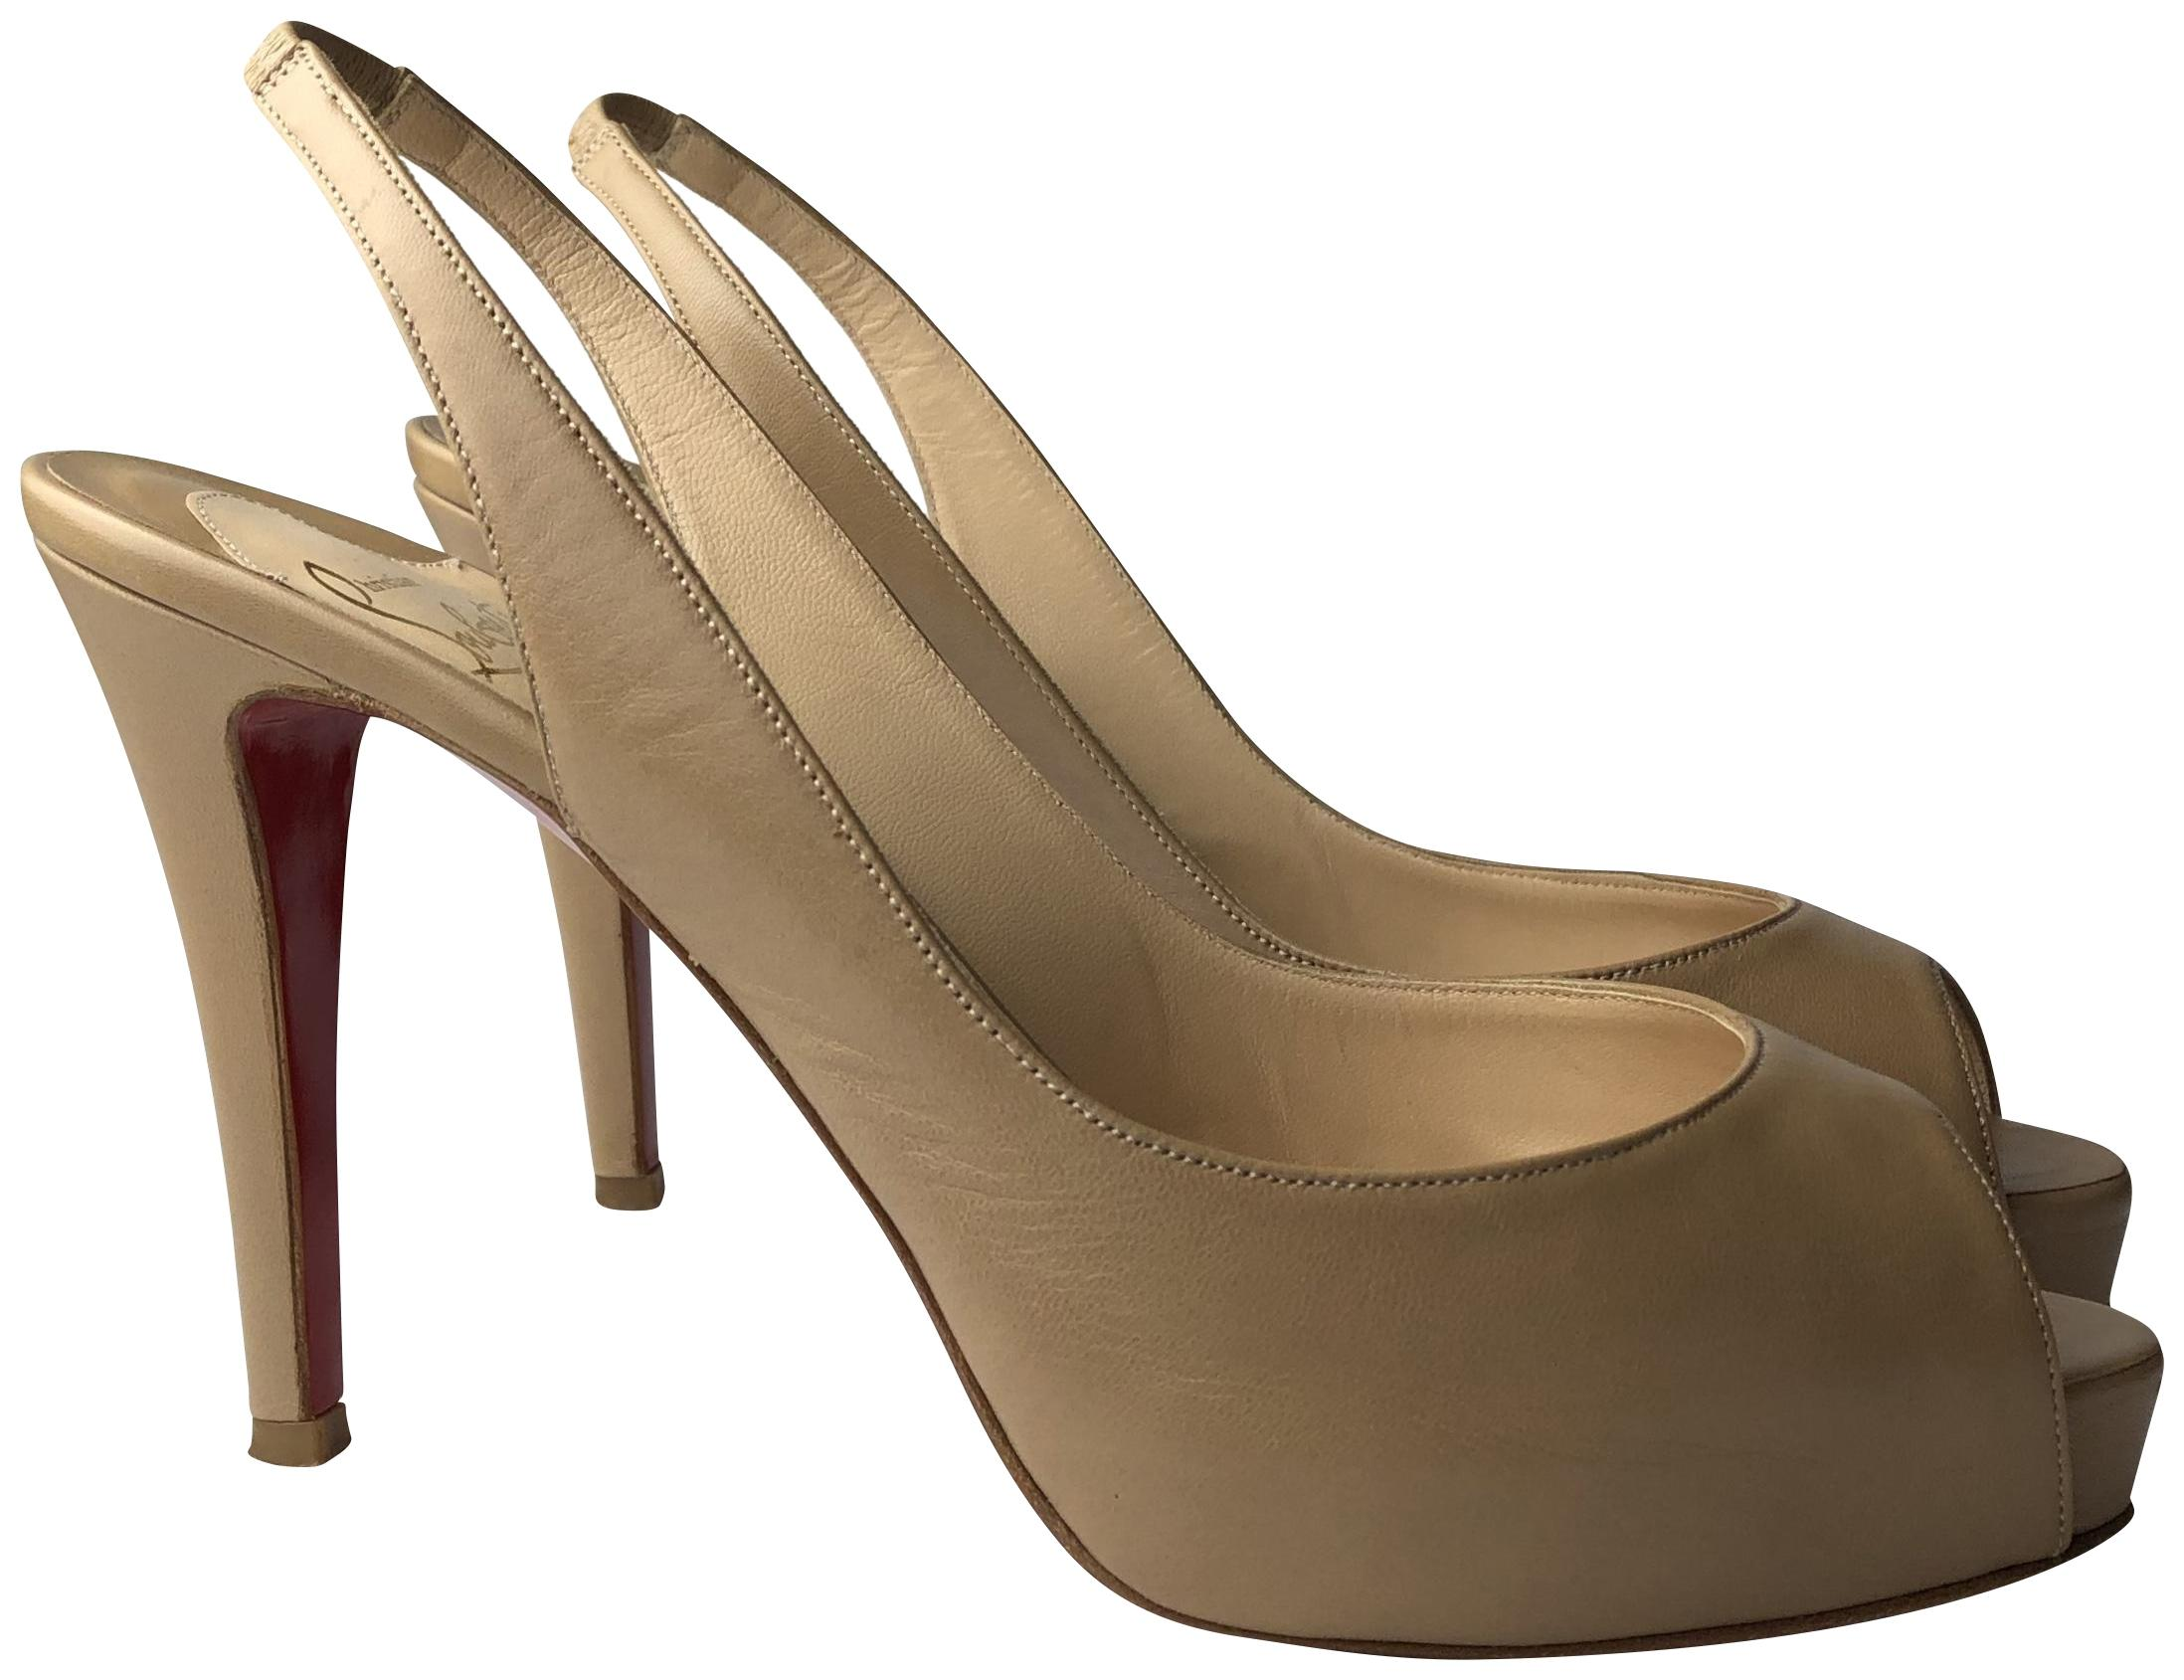 Christian Louboutin Nude Private 100 Leather Peep Pumps Size EU 38 (Approx. US 8) Regular (M, B)